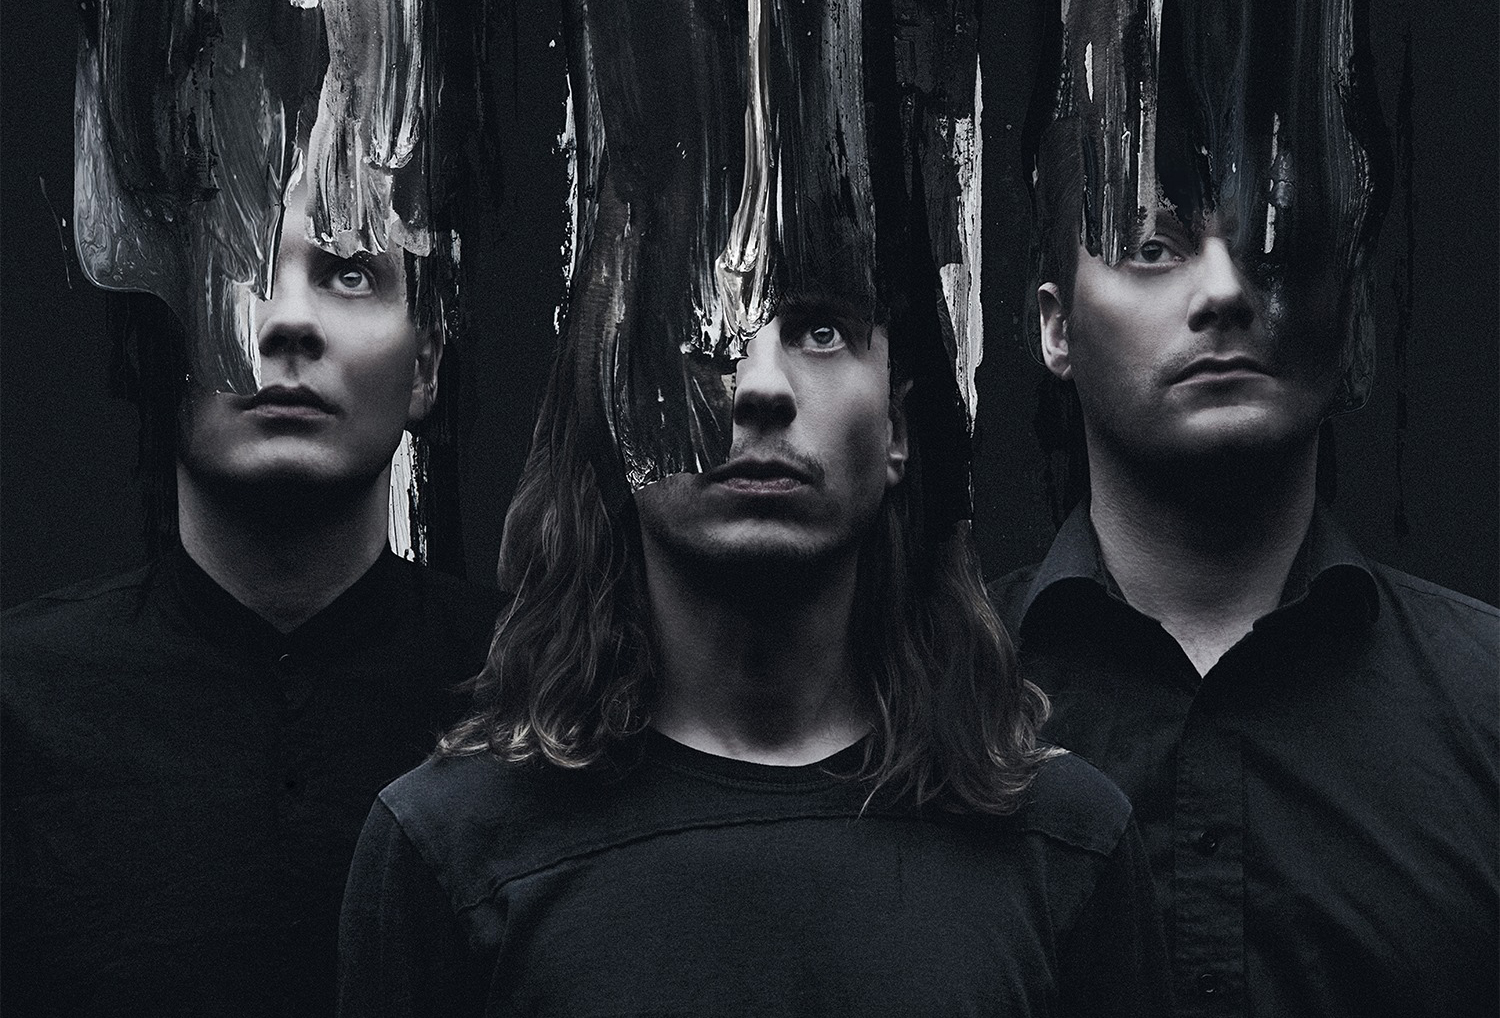 Sigur Rós reveal a brand new song and video, 'Oveður'